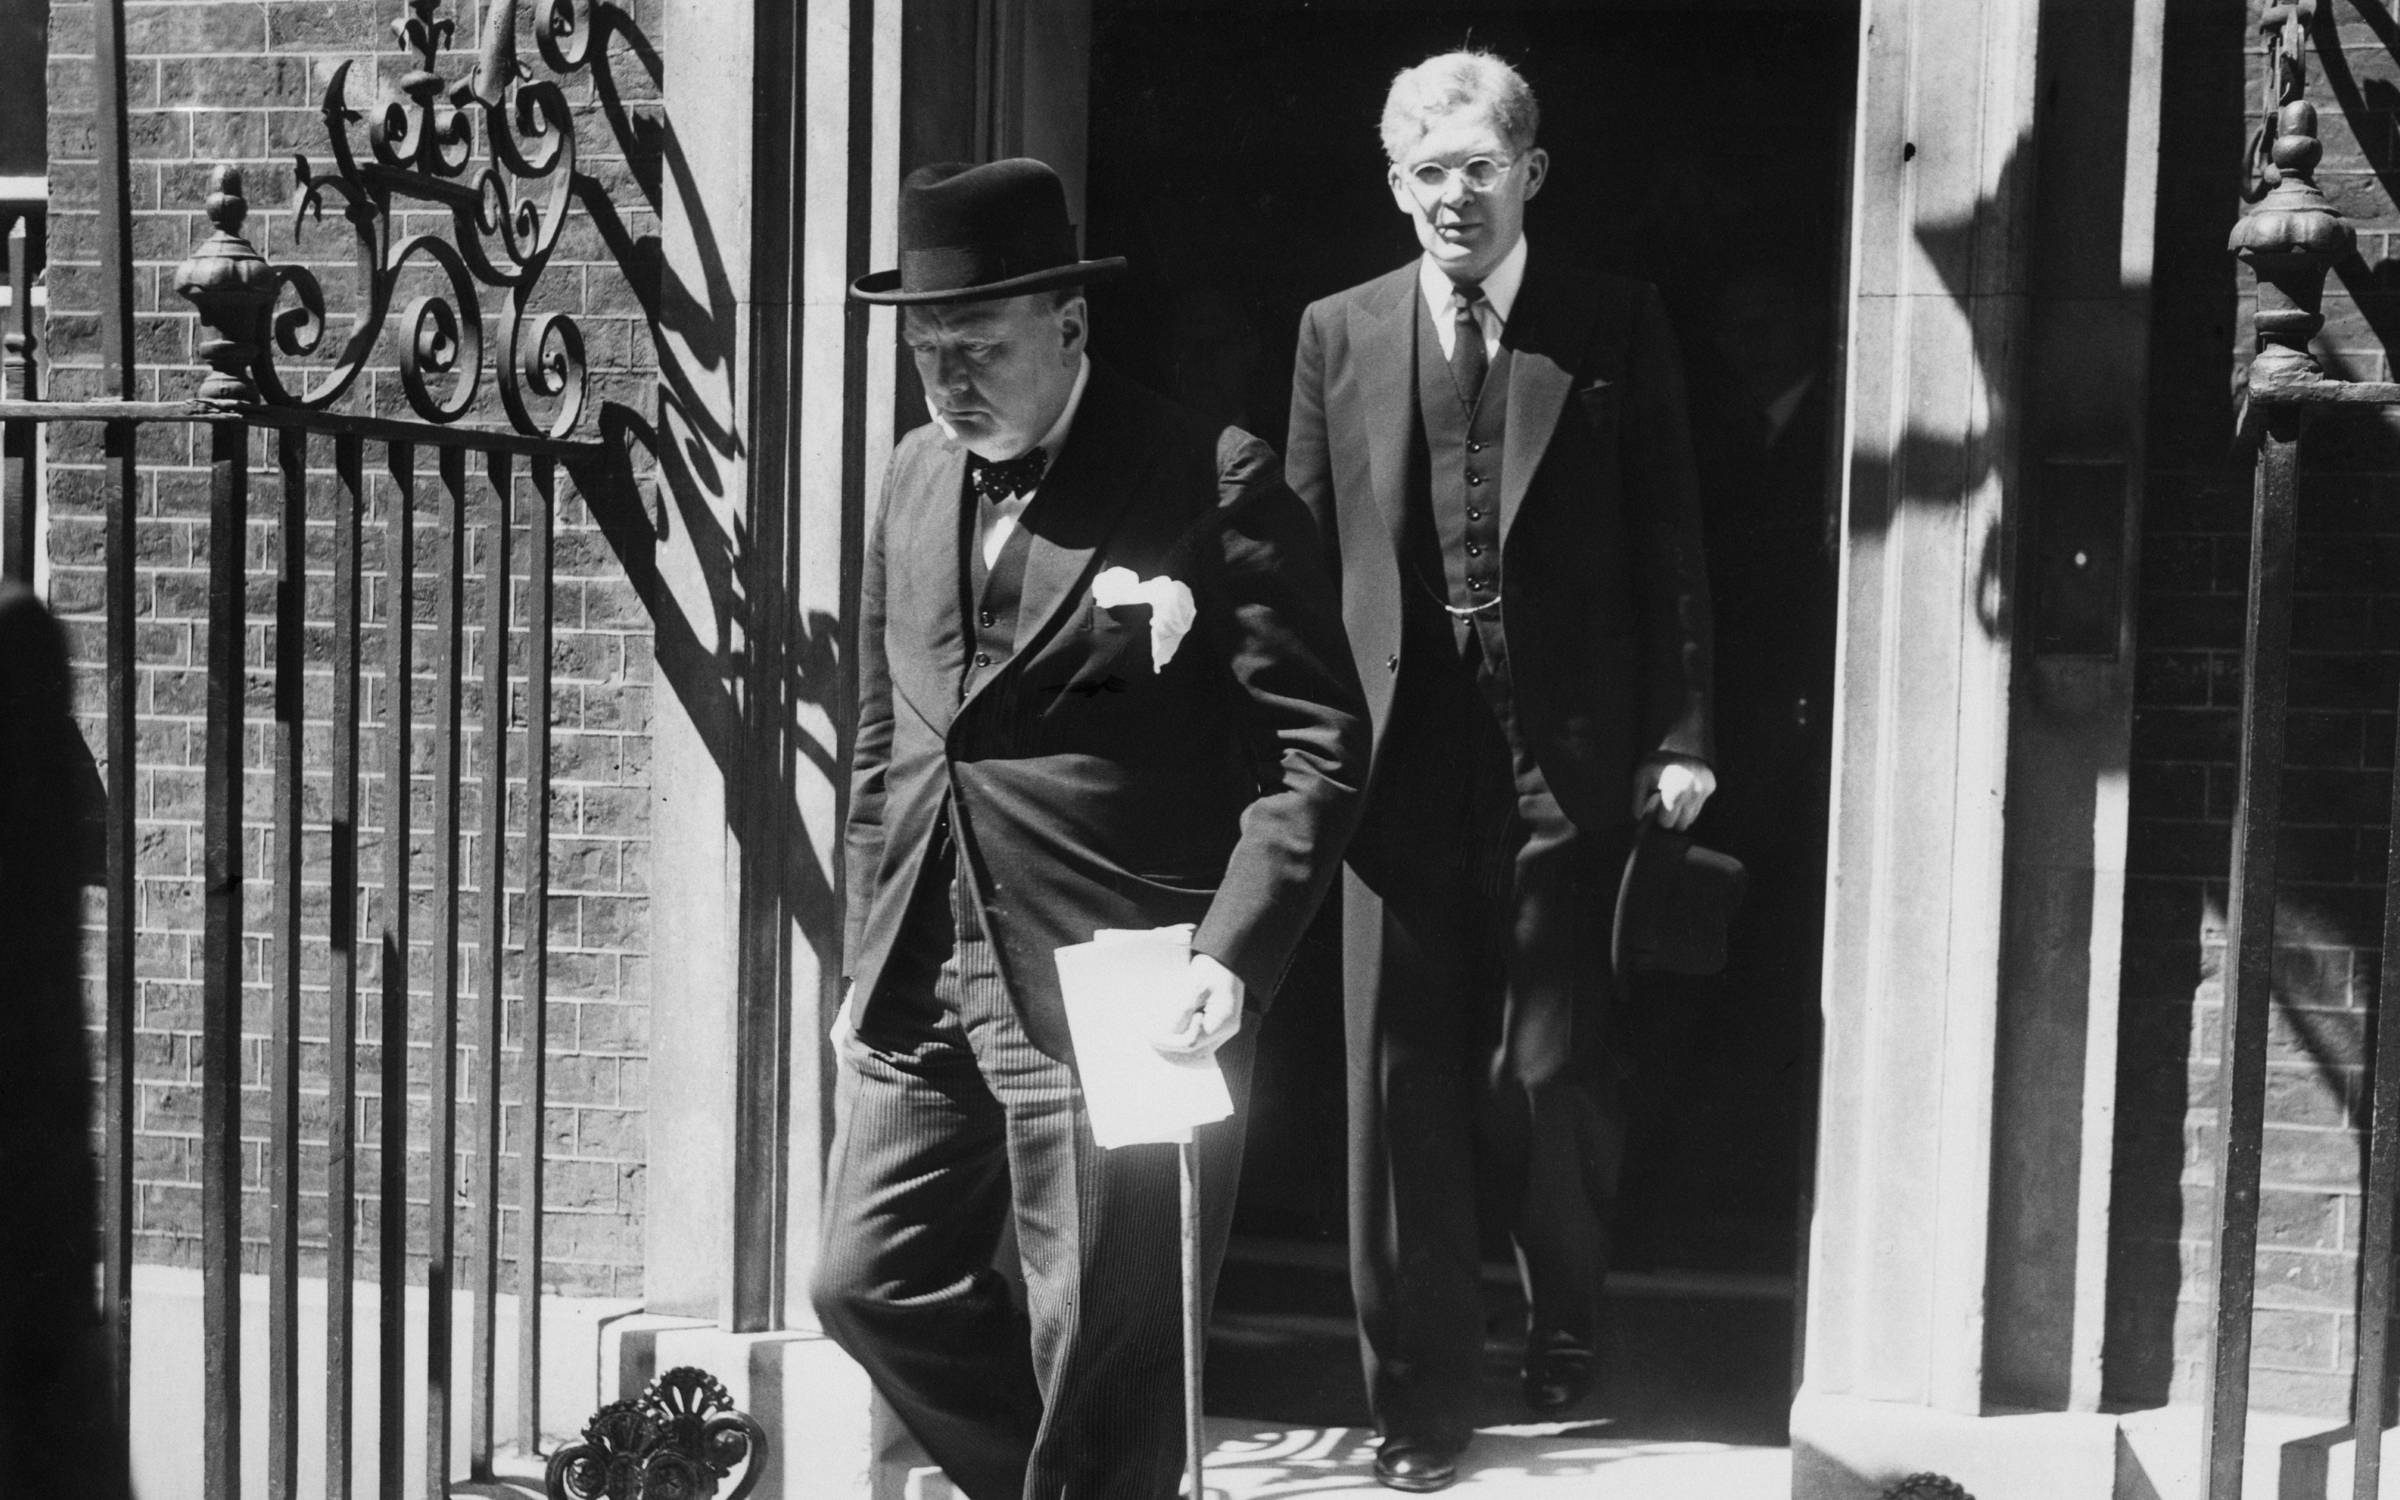 London, England, 18th June, 1940, British Prime Minister Winston Churchill (1874-1965) leaves Number 10 Downing Street to make his statement in the House of Commons on the capitulation of France during World War Two. Behind him is Parliamentary Private Secretary Brendan Bracken (1901-1958). (Photo by Popperfoto via Getty Images/Getty Images)